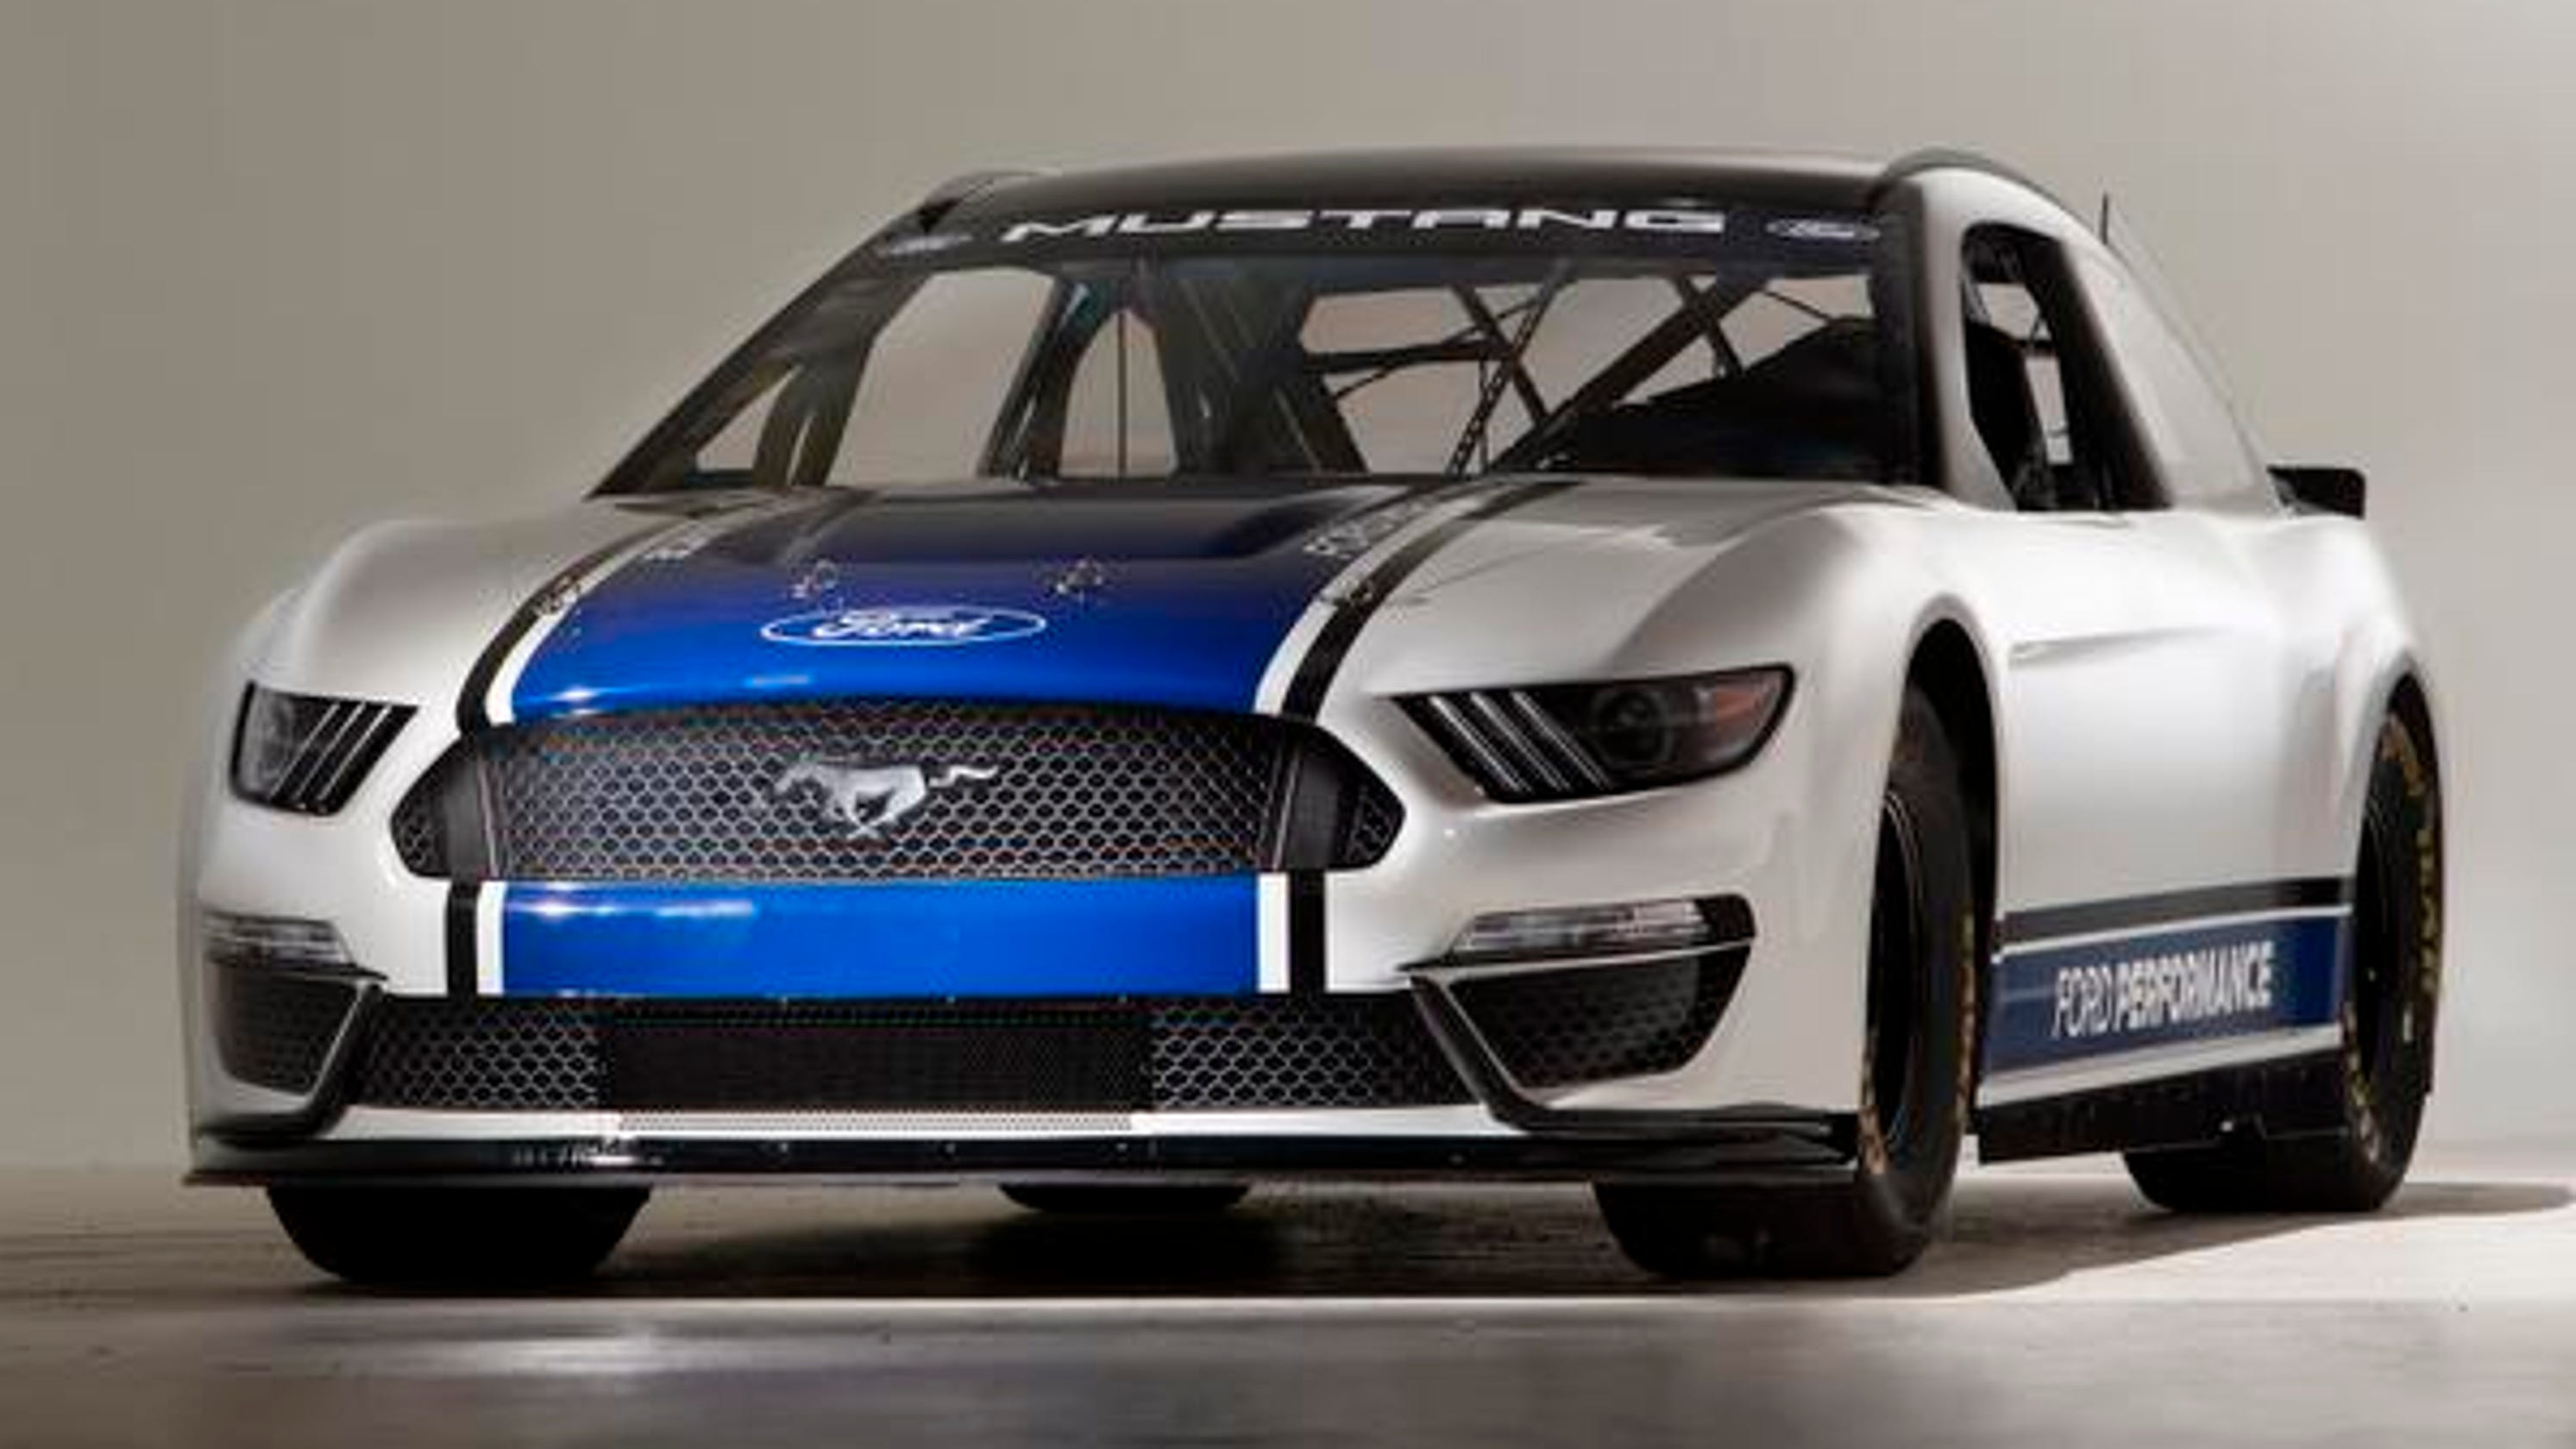 Iconic on the street mustang takes green flag for nascar